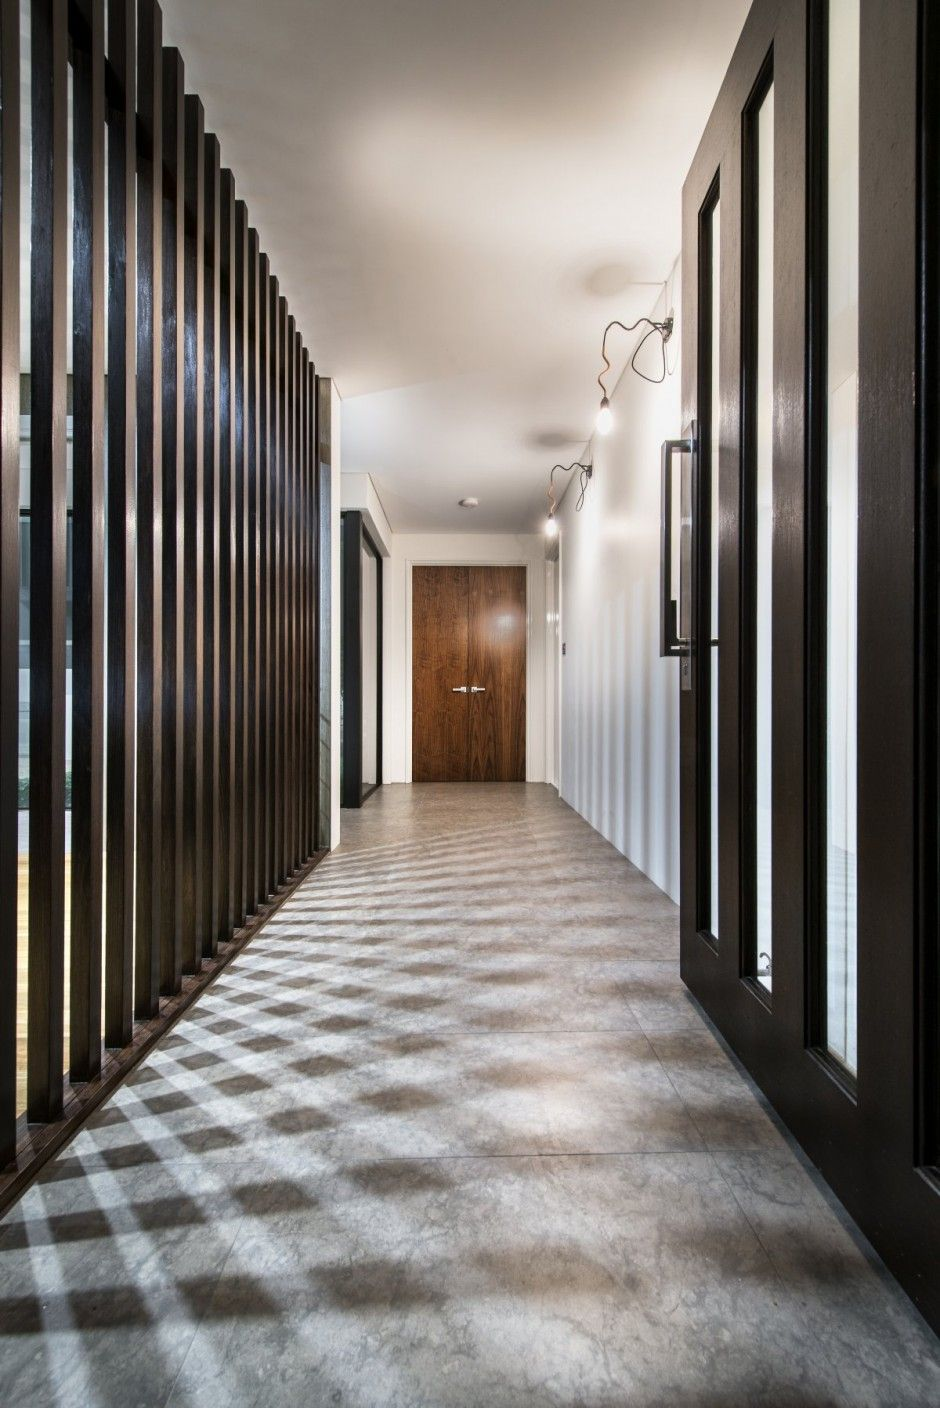 Interior design multi family corridor google search for Residential interior design ideas